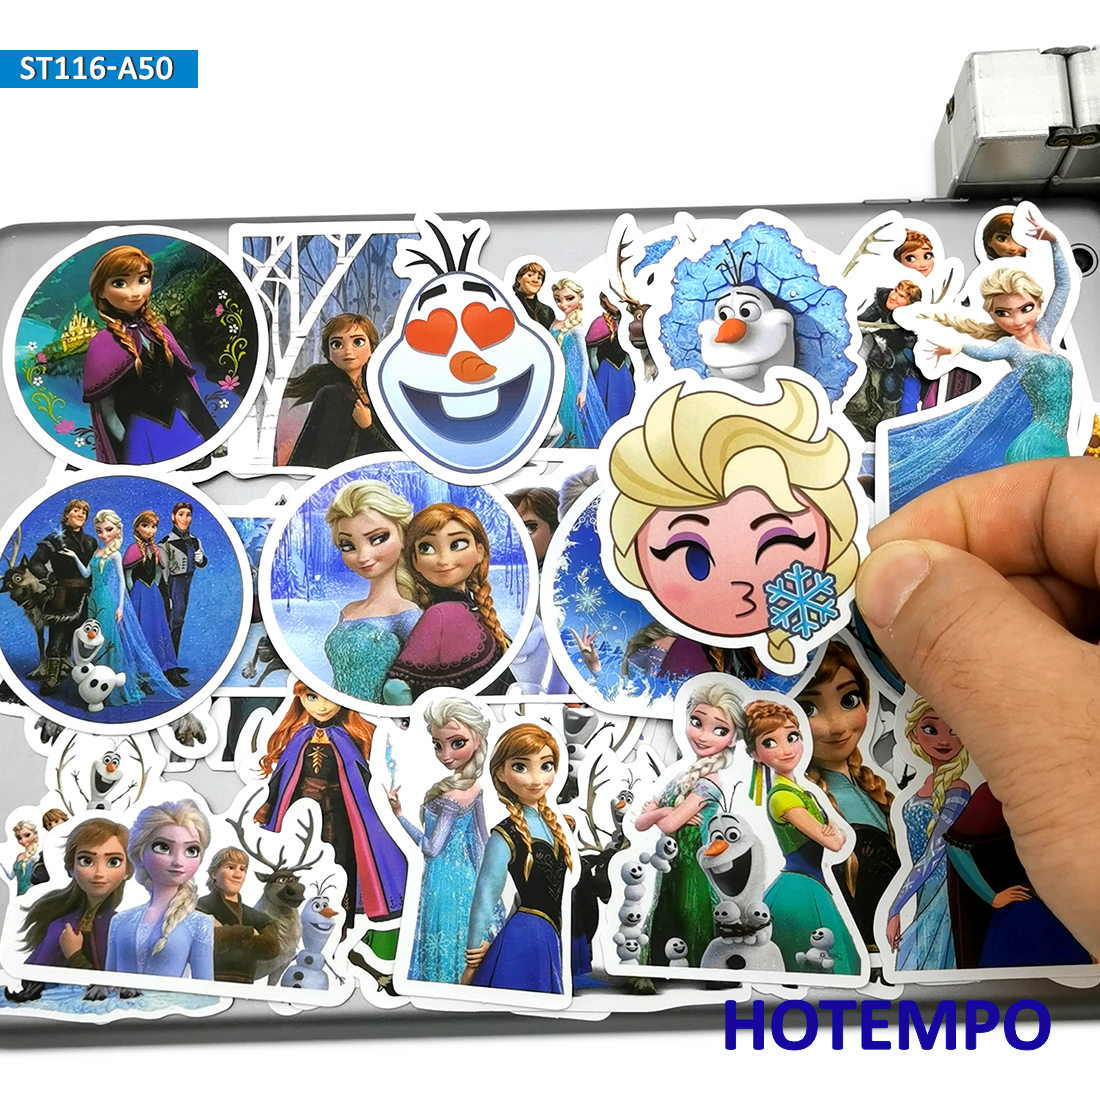 50pcs Cute Elsa Anna Princess Anime Movie Stickers Toys For Kids Girl Scrapbook Stationery Mobile Phone Laptop Suitcase Stickers